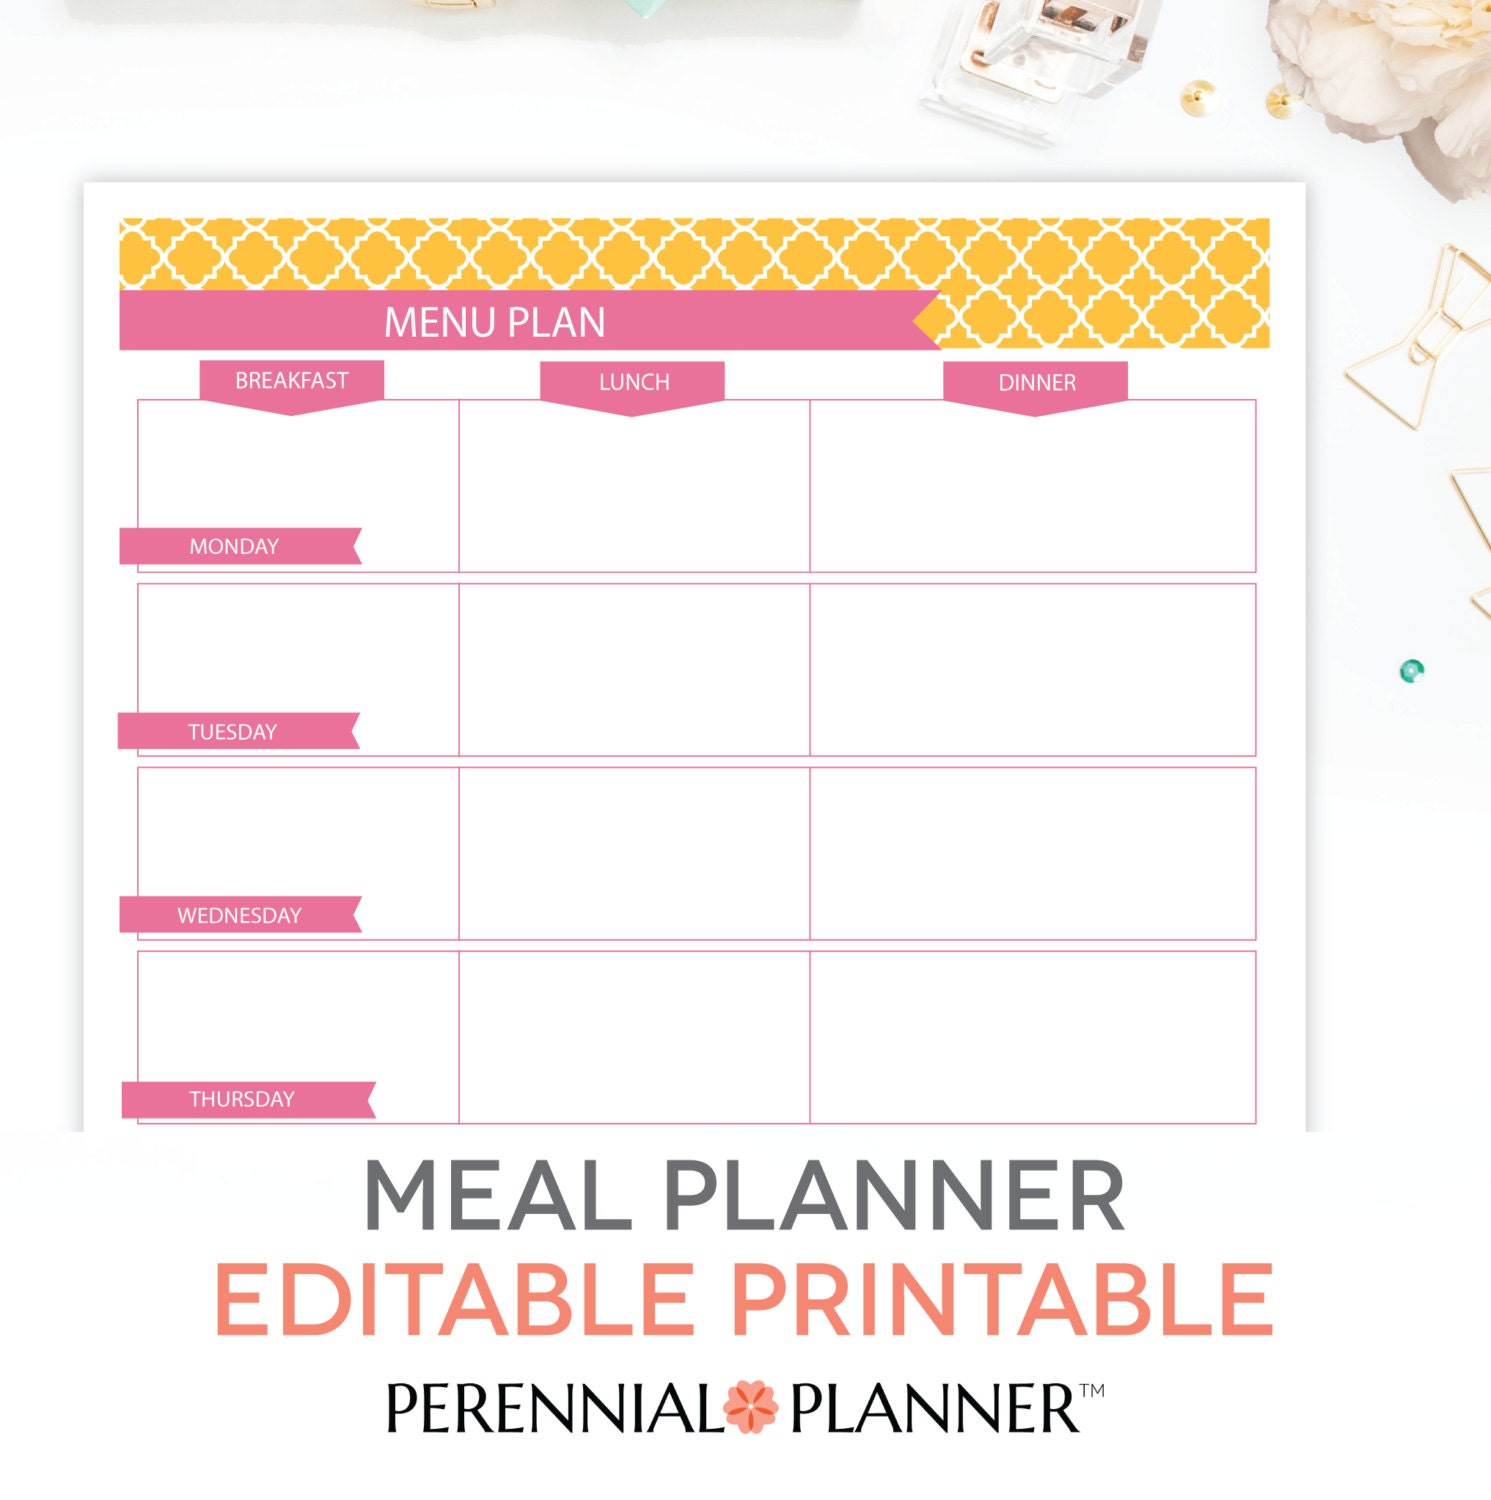 menu plan weekly meal planning template printable editable | etsy